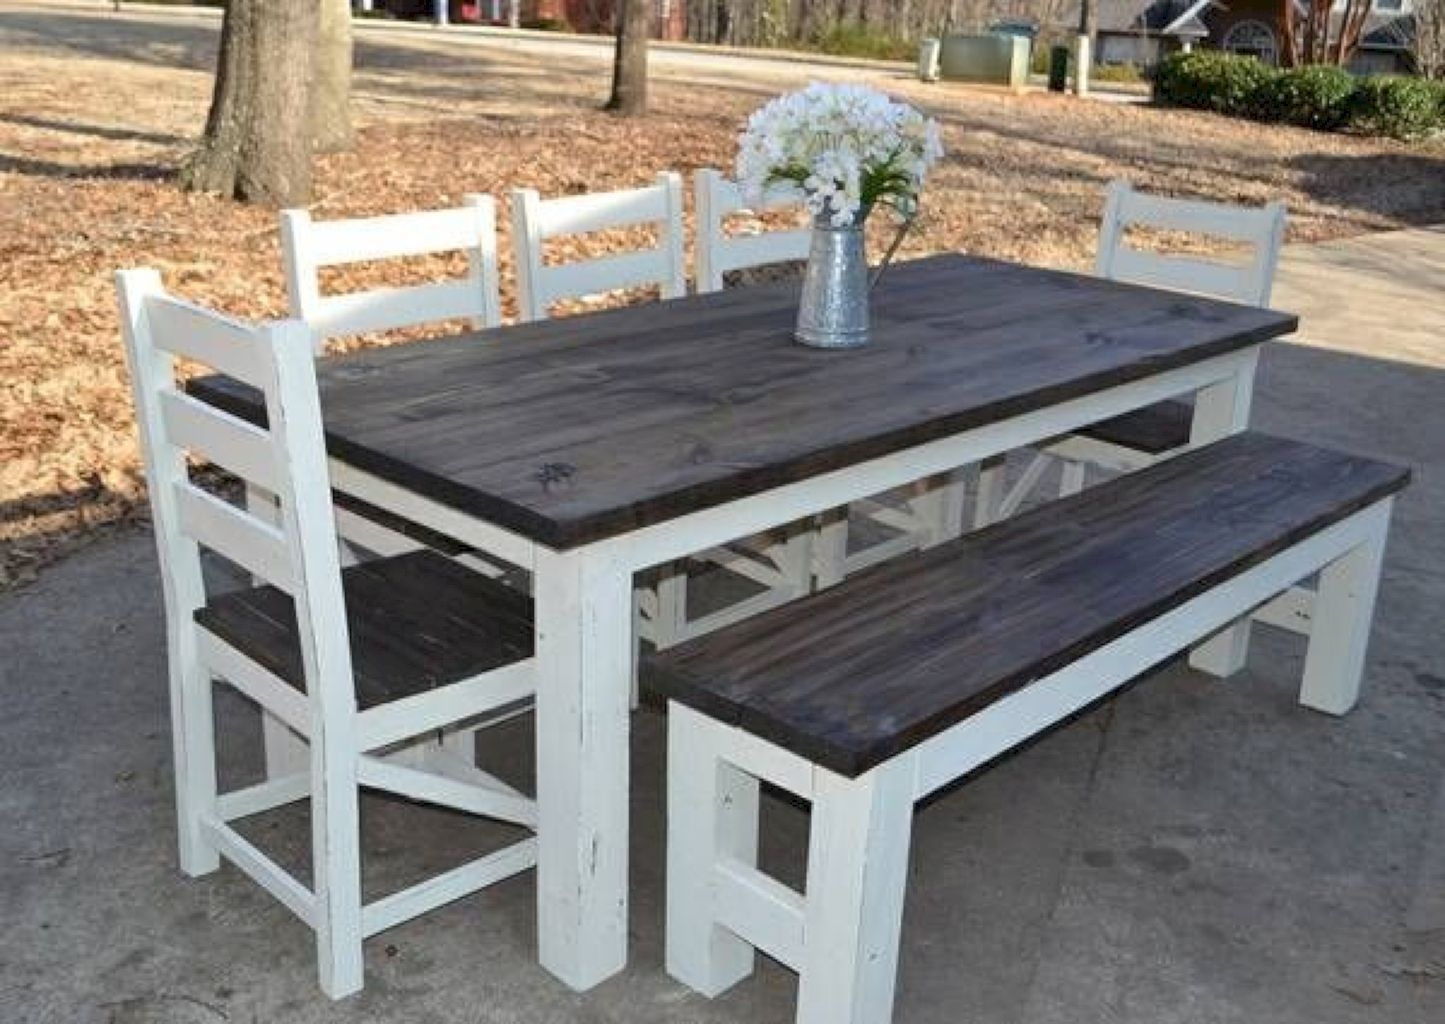 Farmhouse table and bench set 1 & Farmhouse Table And Bench Set - Foter